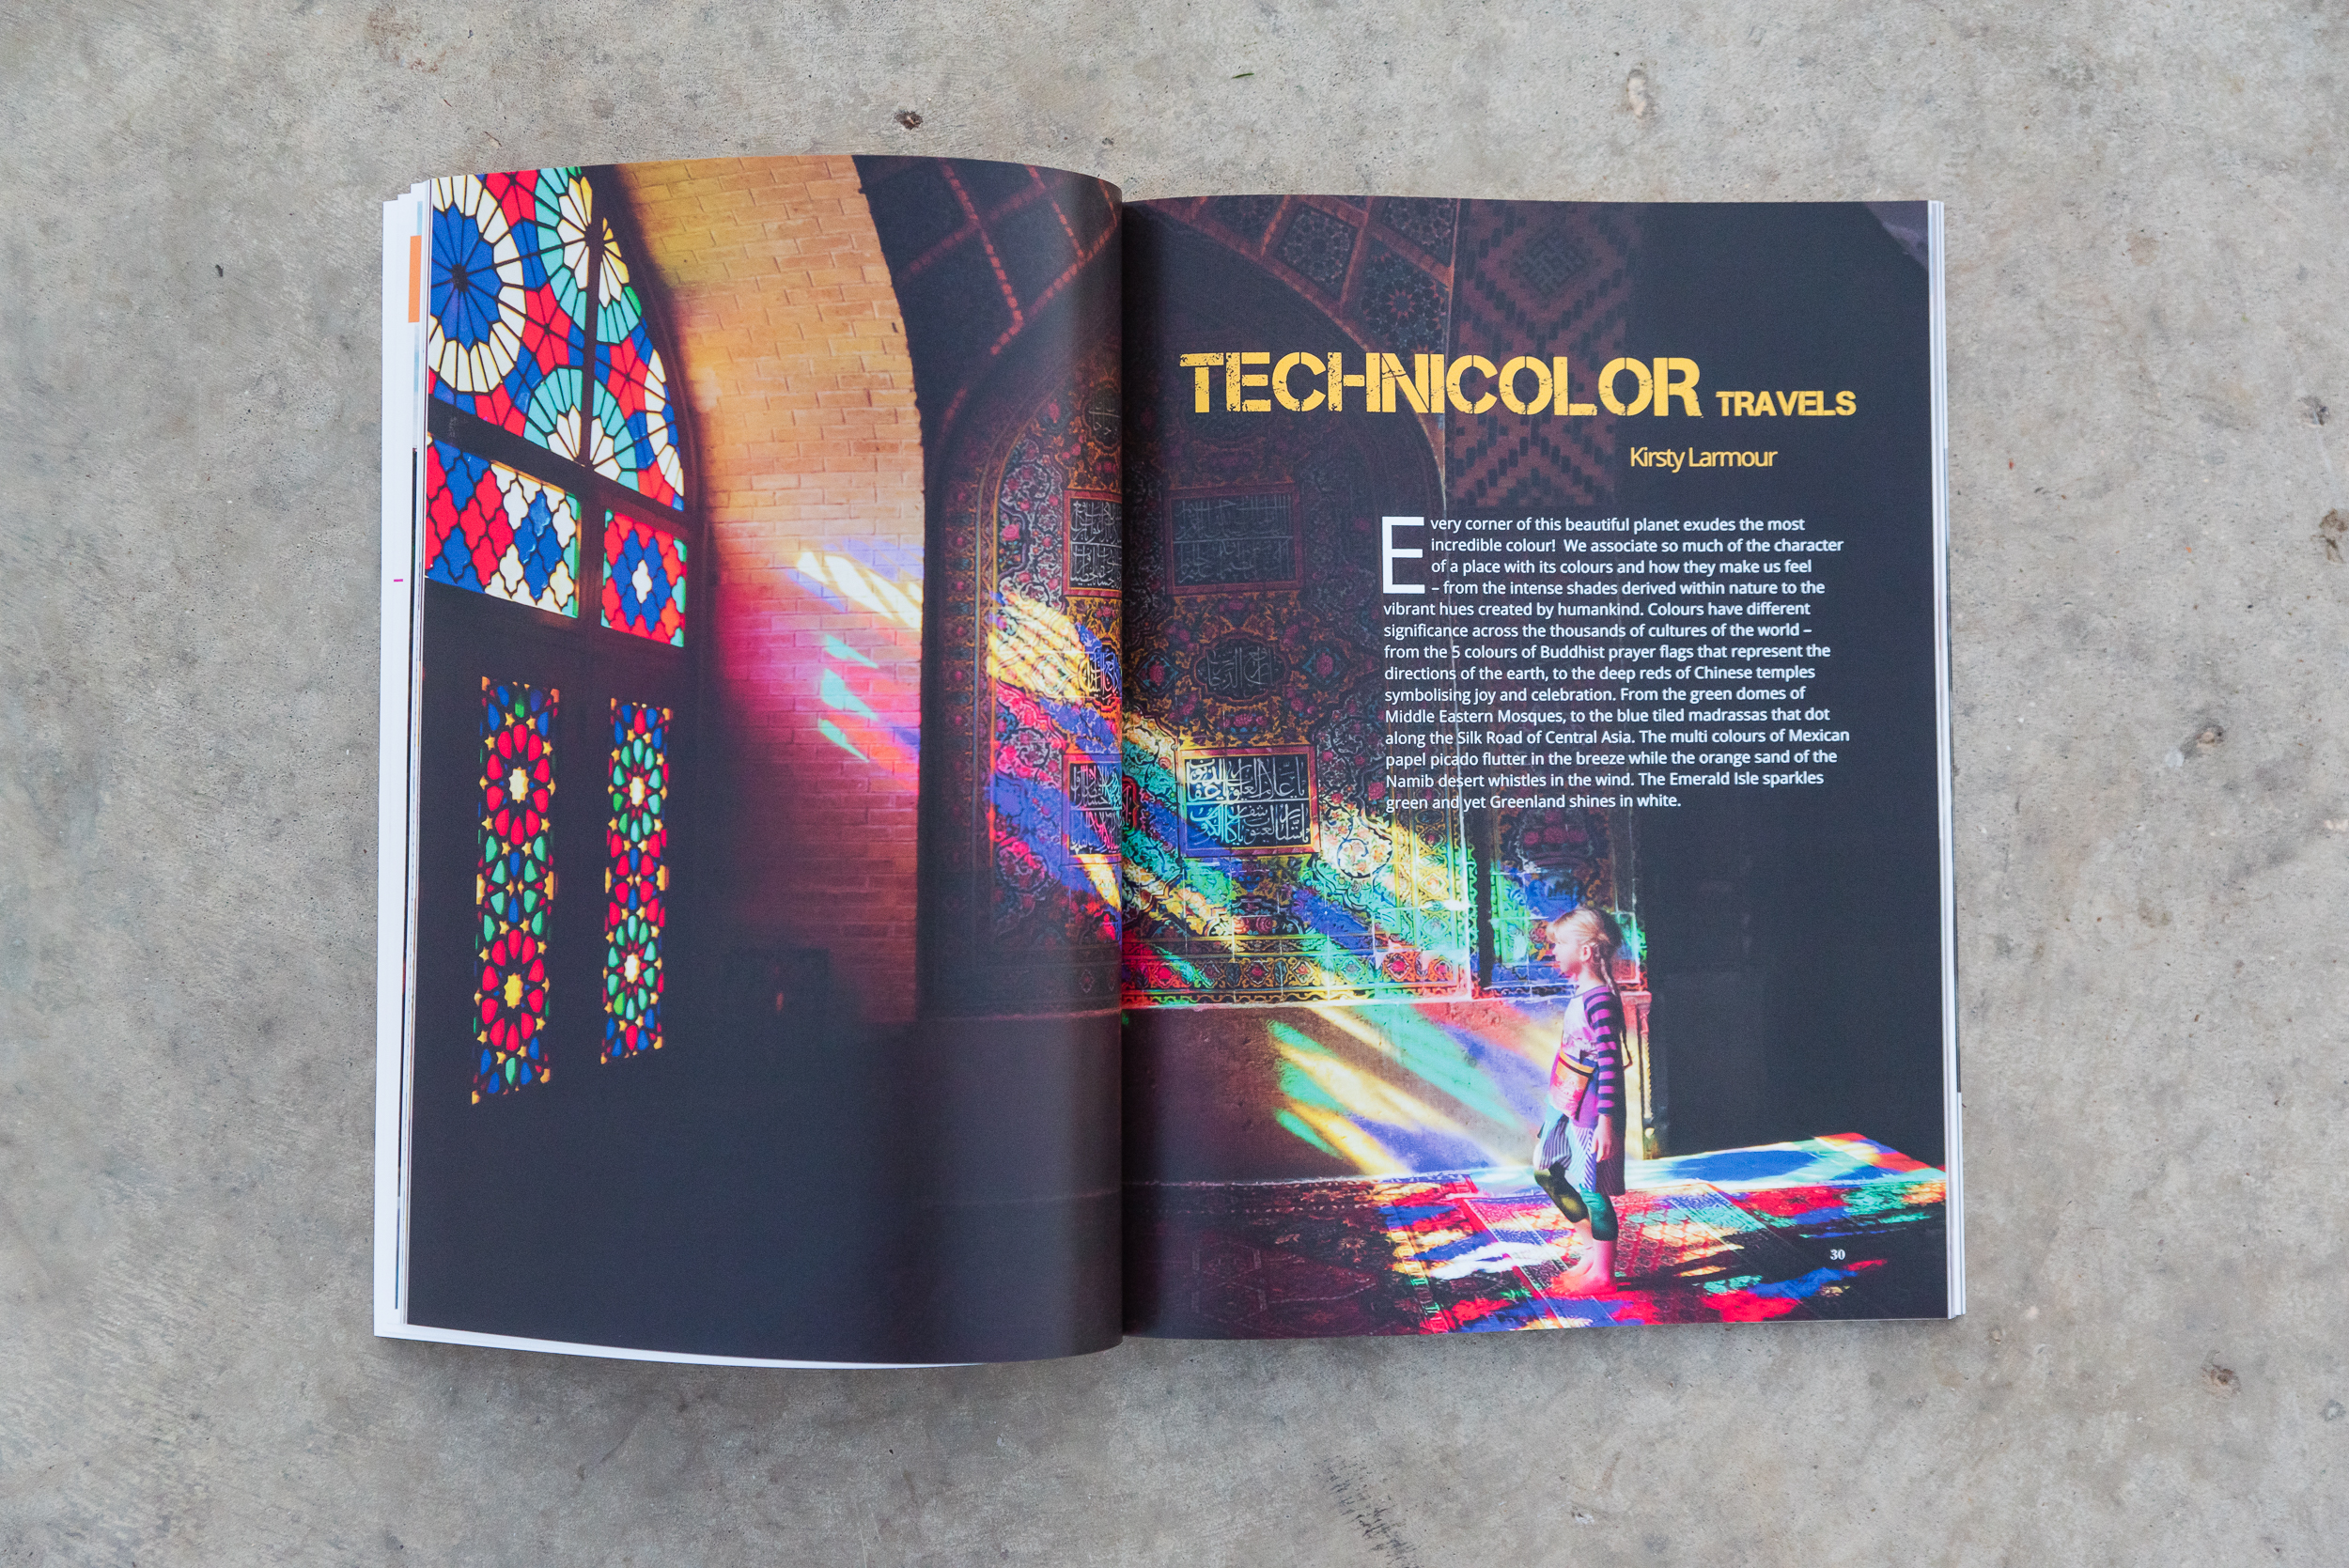 Kirsty Larmour's Technicolor Travels article in the Dear Photogr